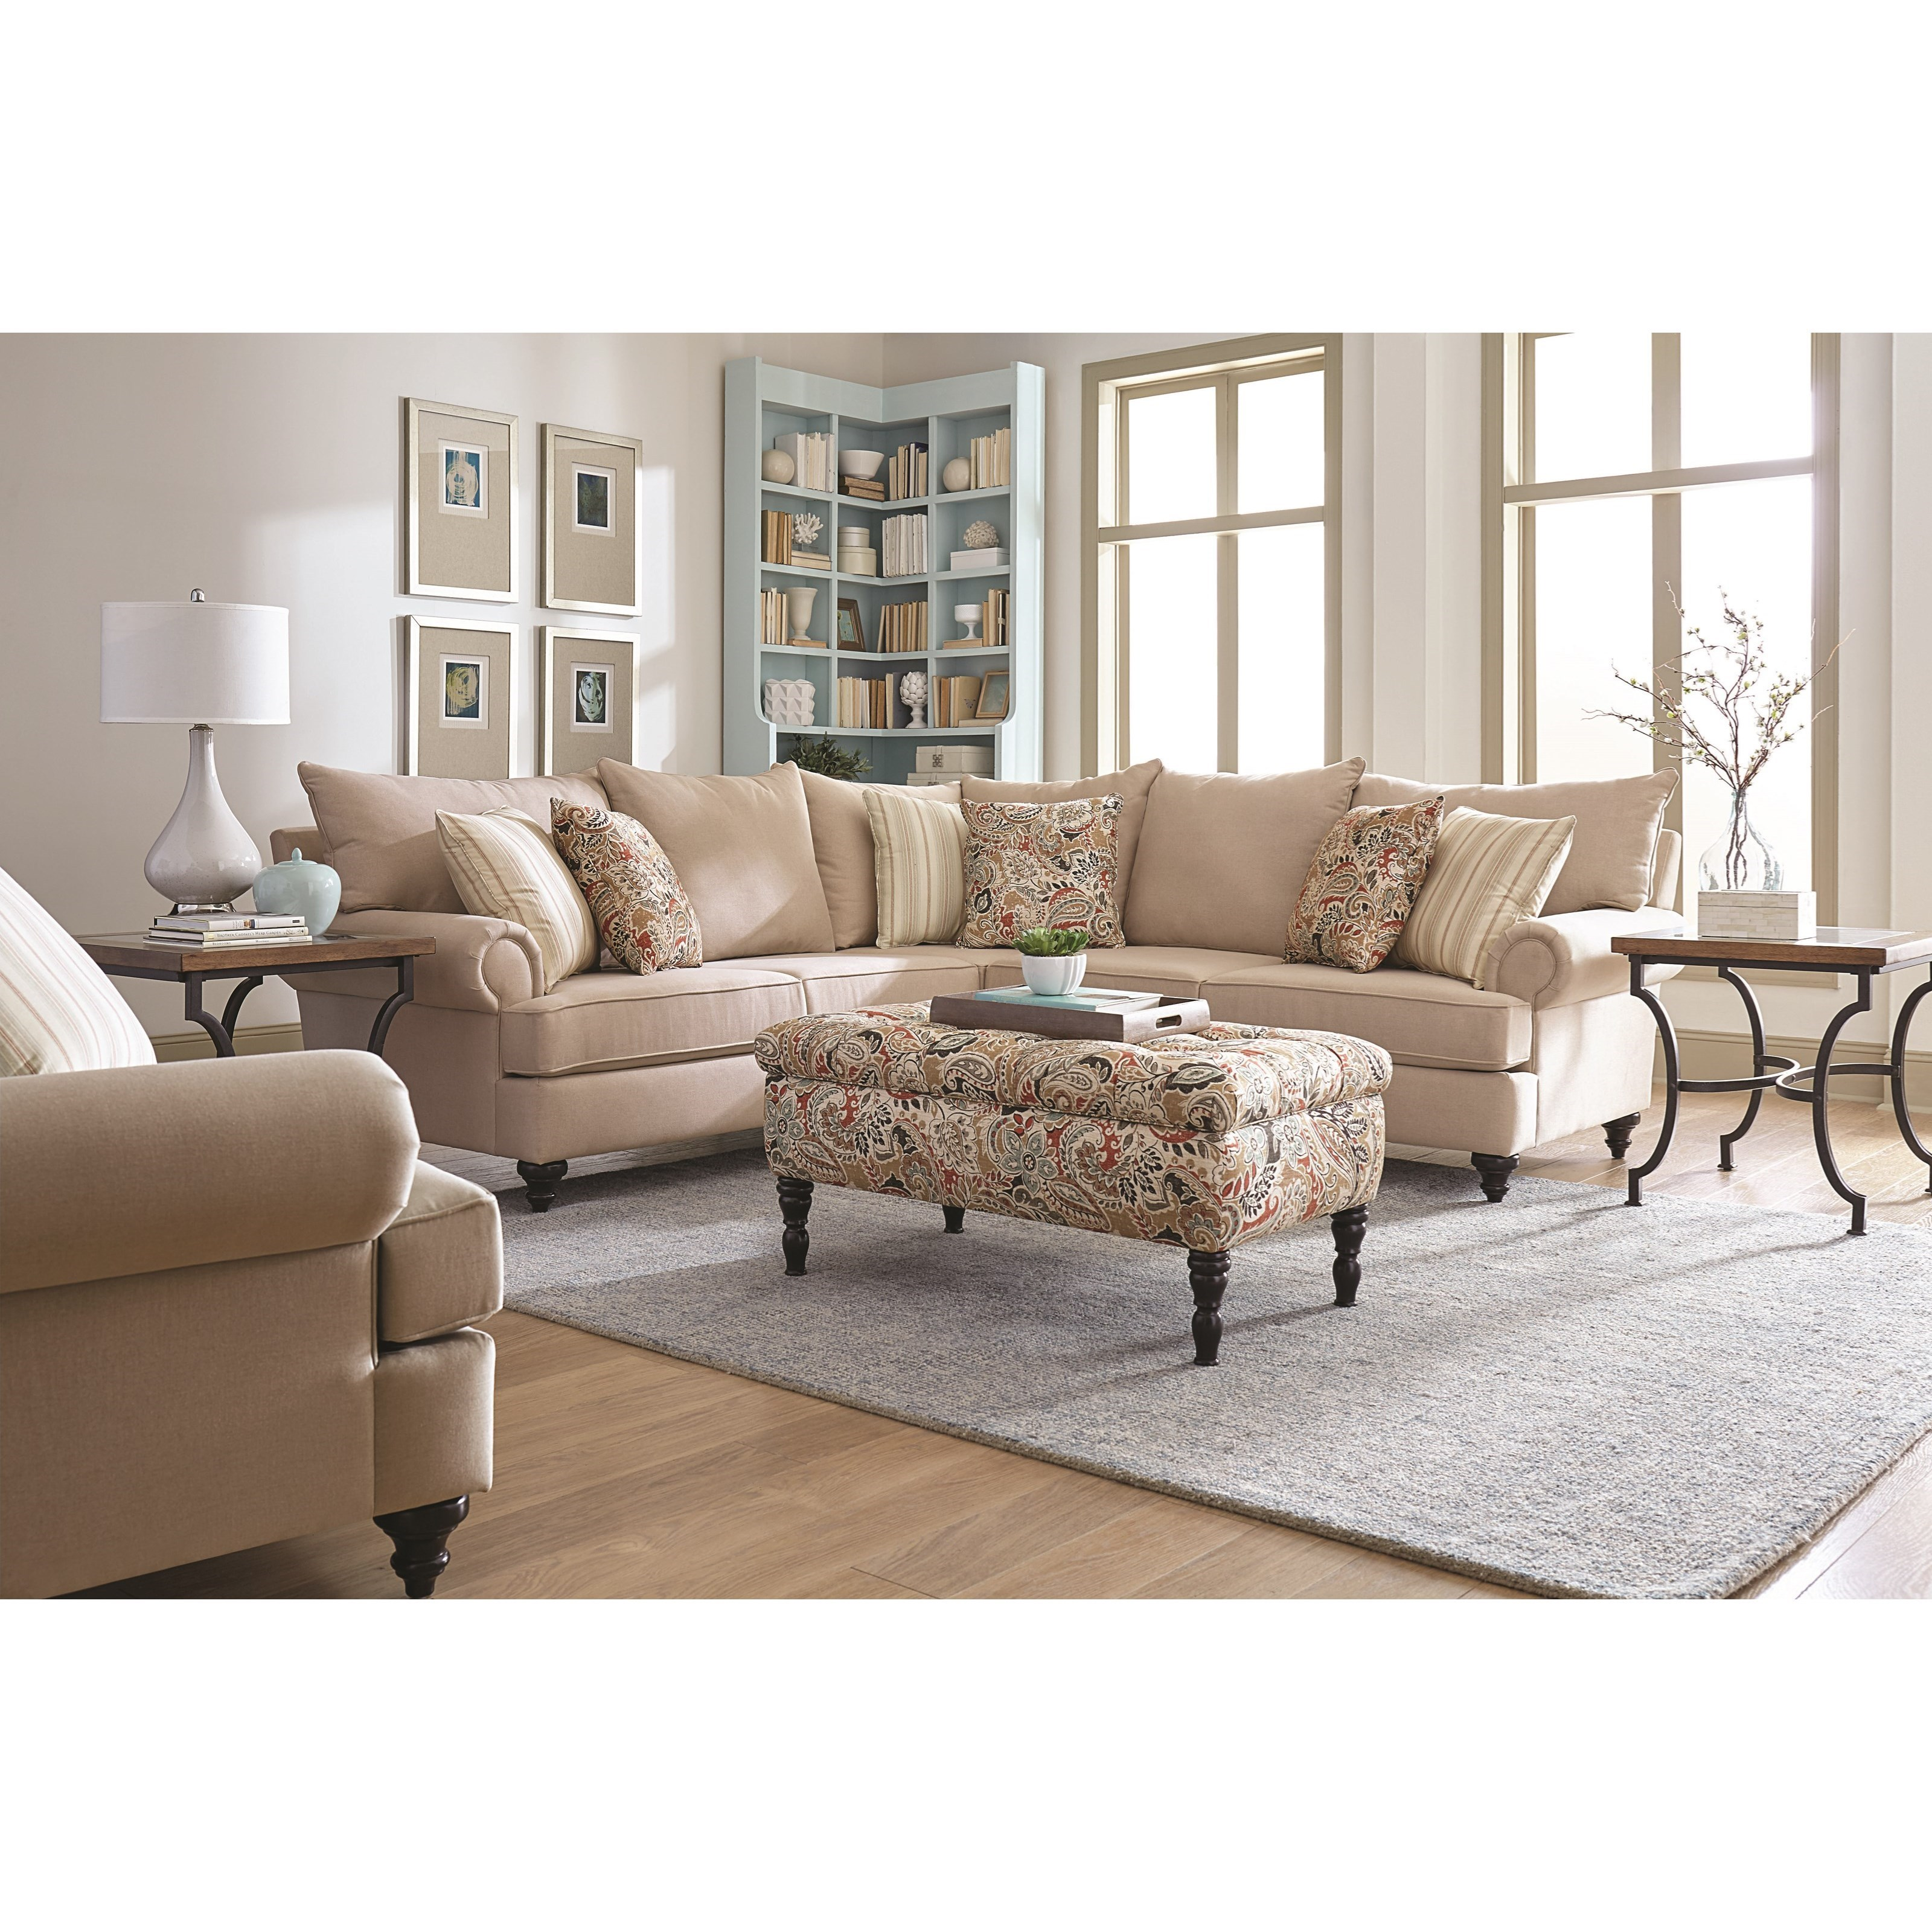 Ottoman Available Separately; England RosalieSectional Sofa